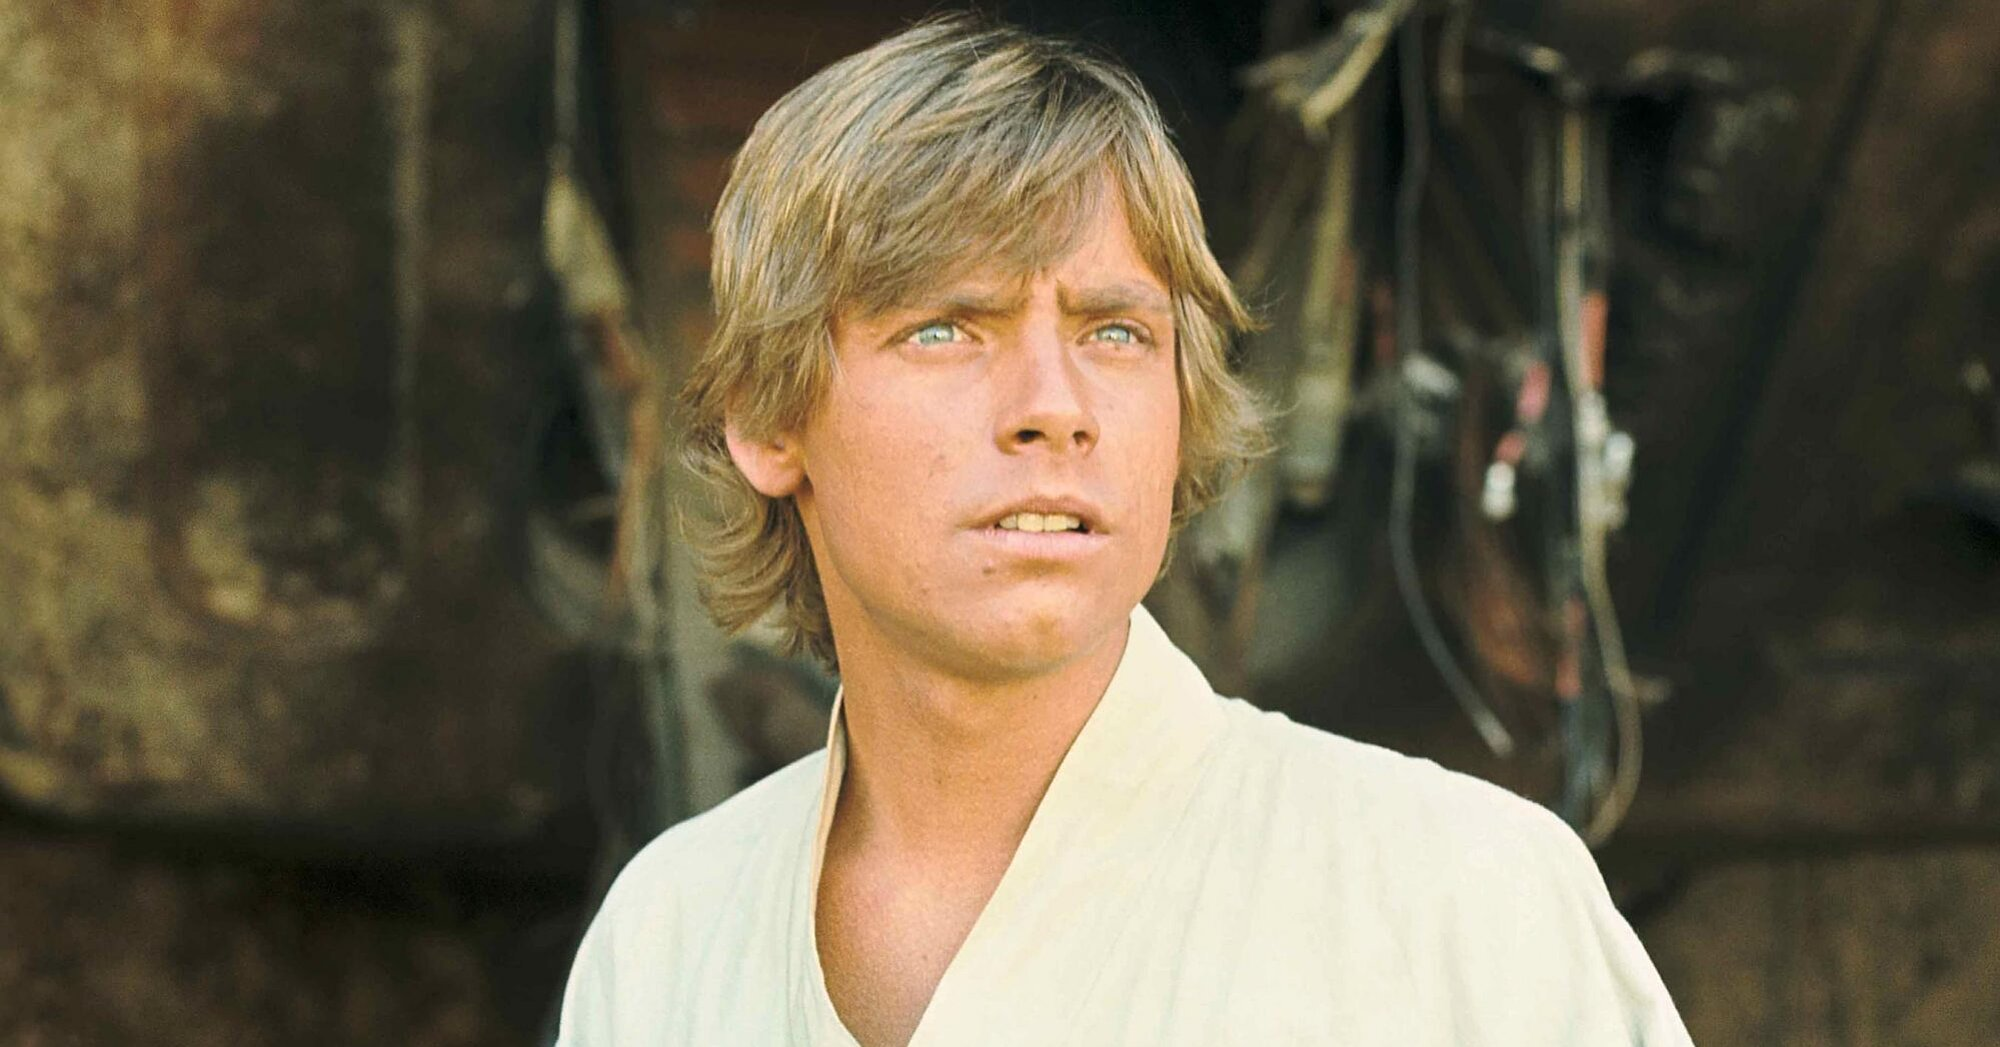 Mark Hamill got Luke Skywalker in Star Wars Valentine's Day date quiz | EW.com